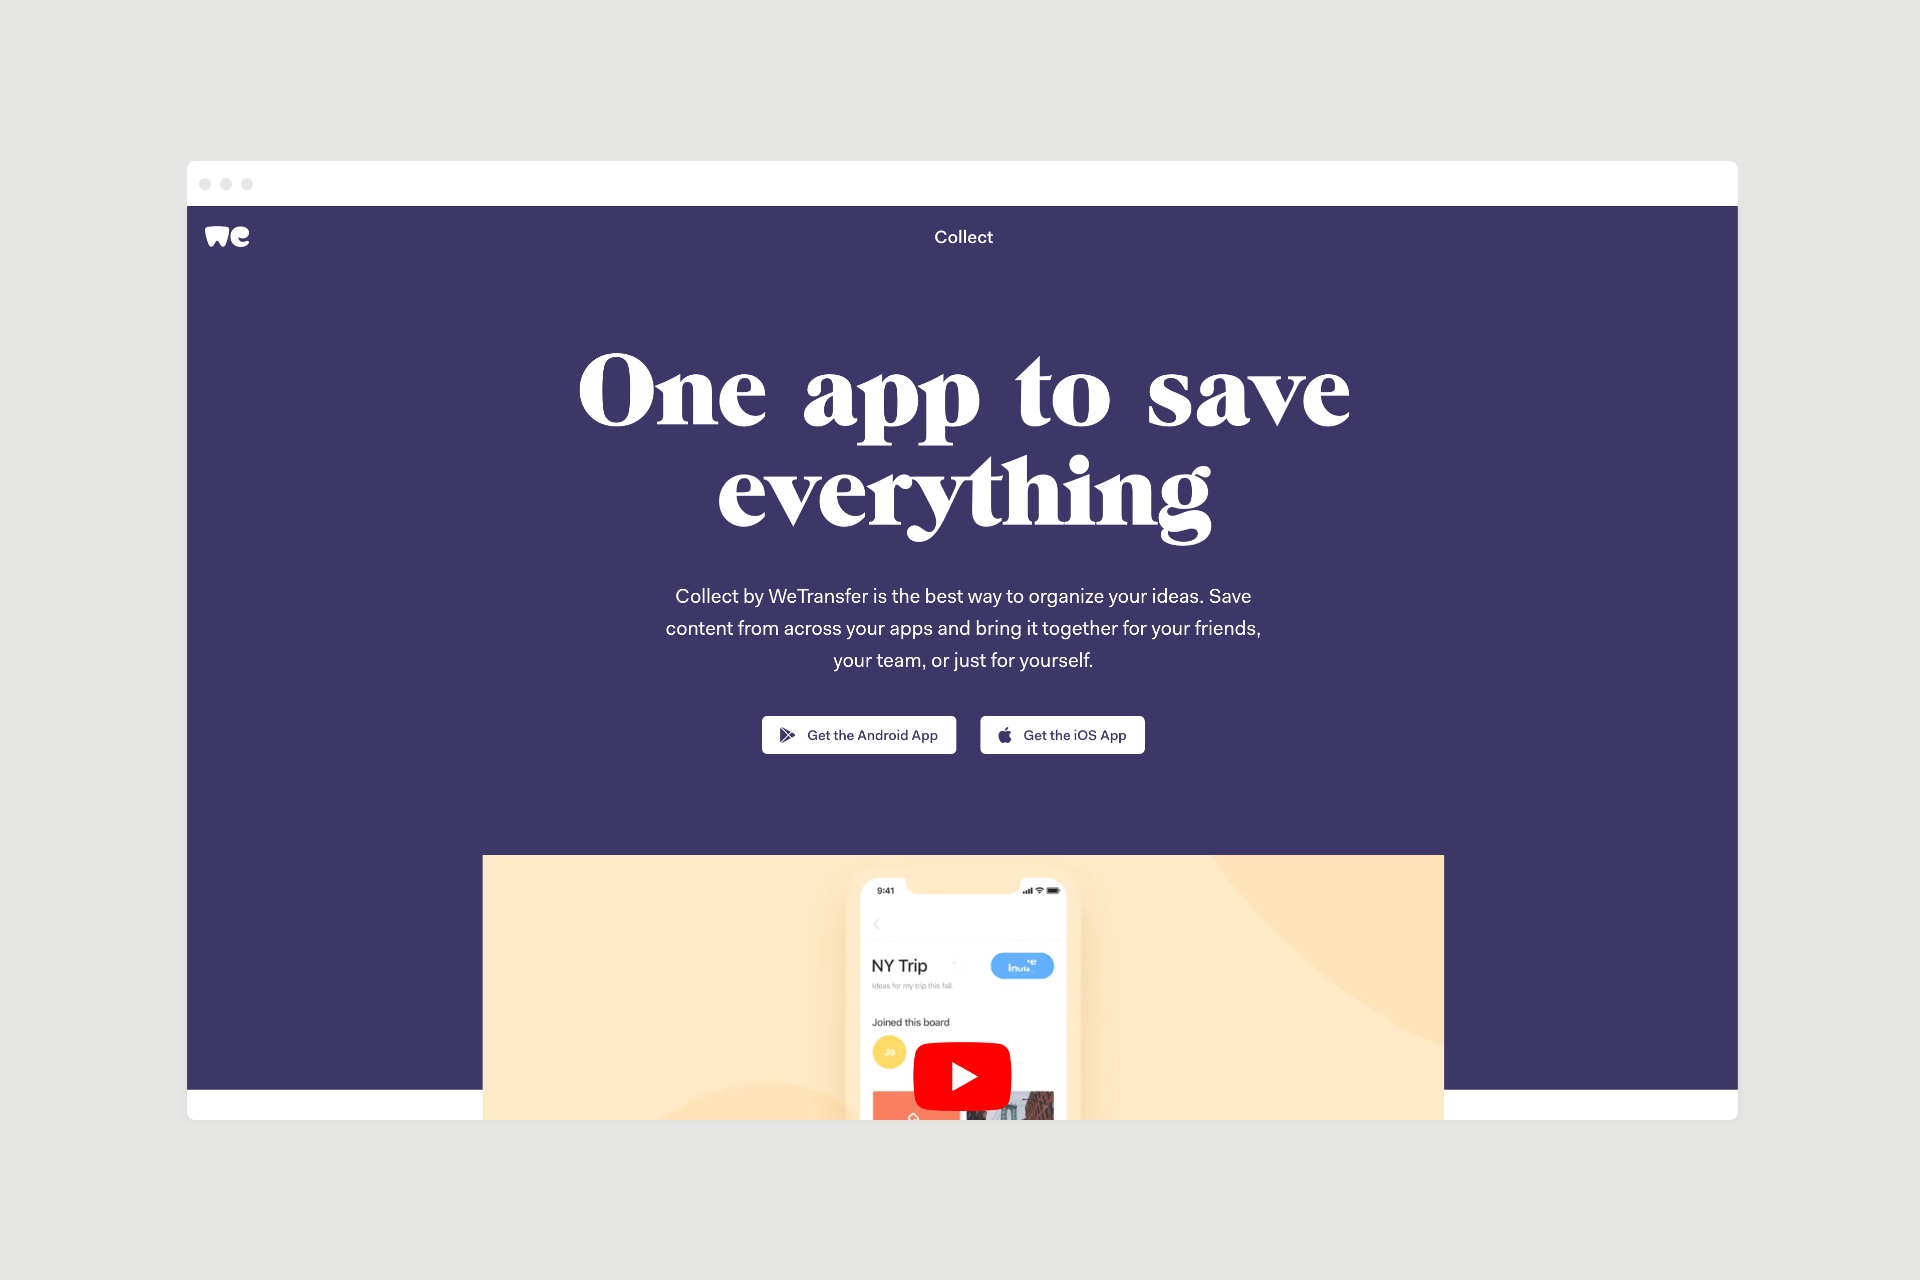 Do traditional landing pages work for tech companies?